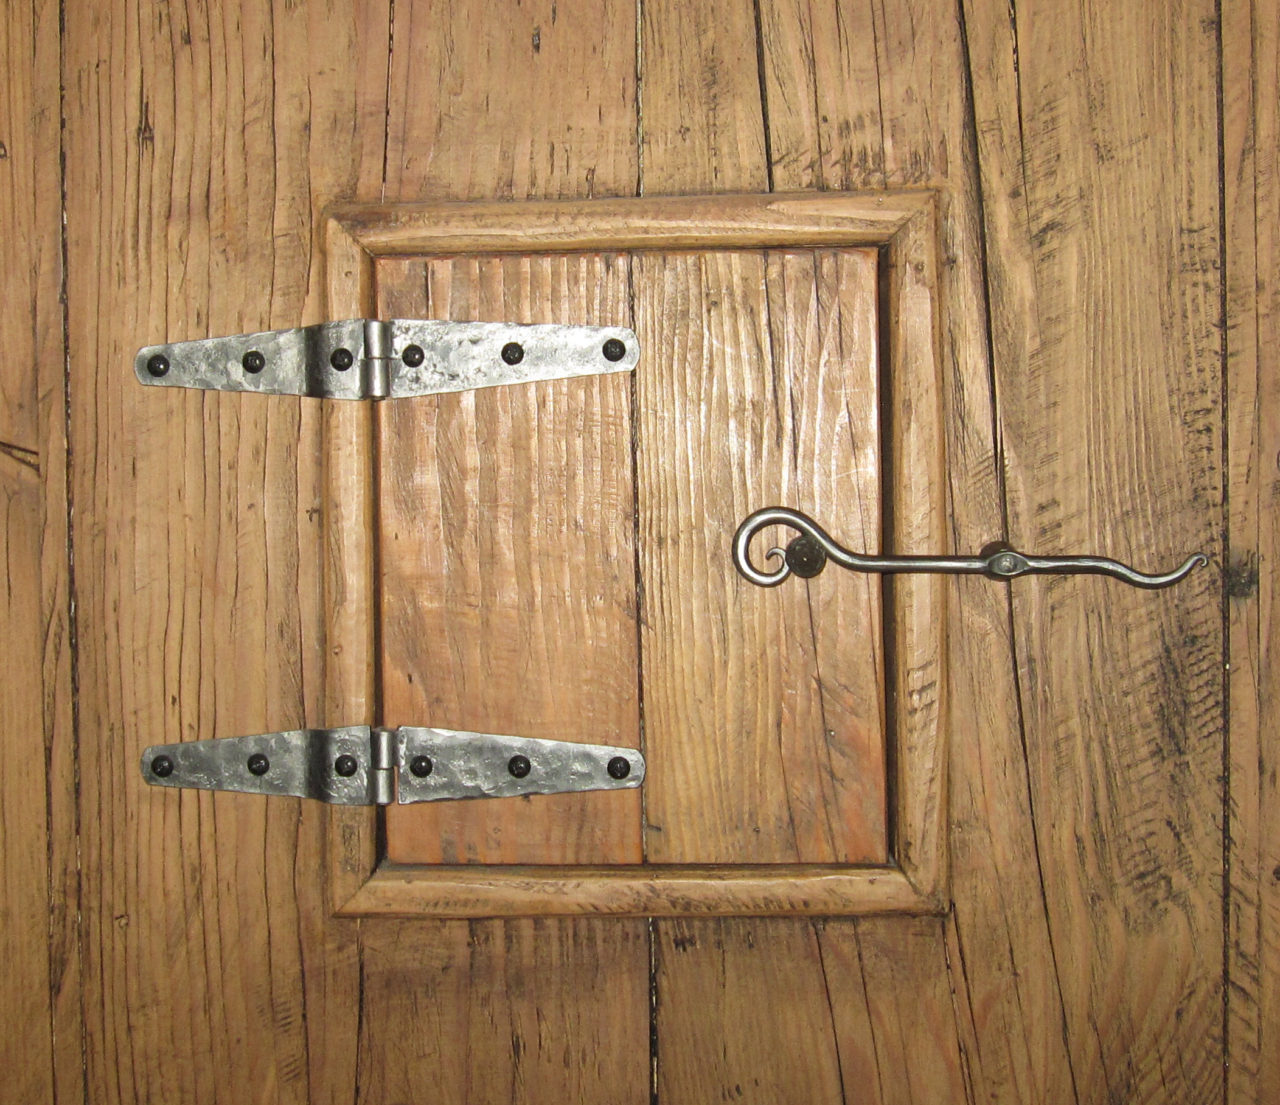 FORGED HINGES LATCH